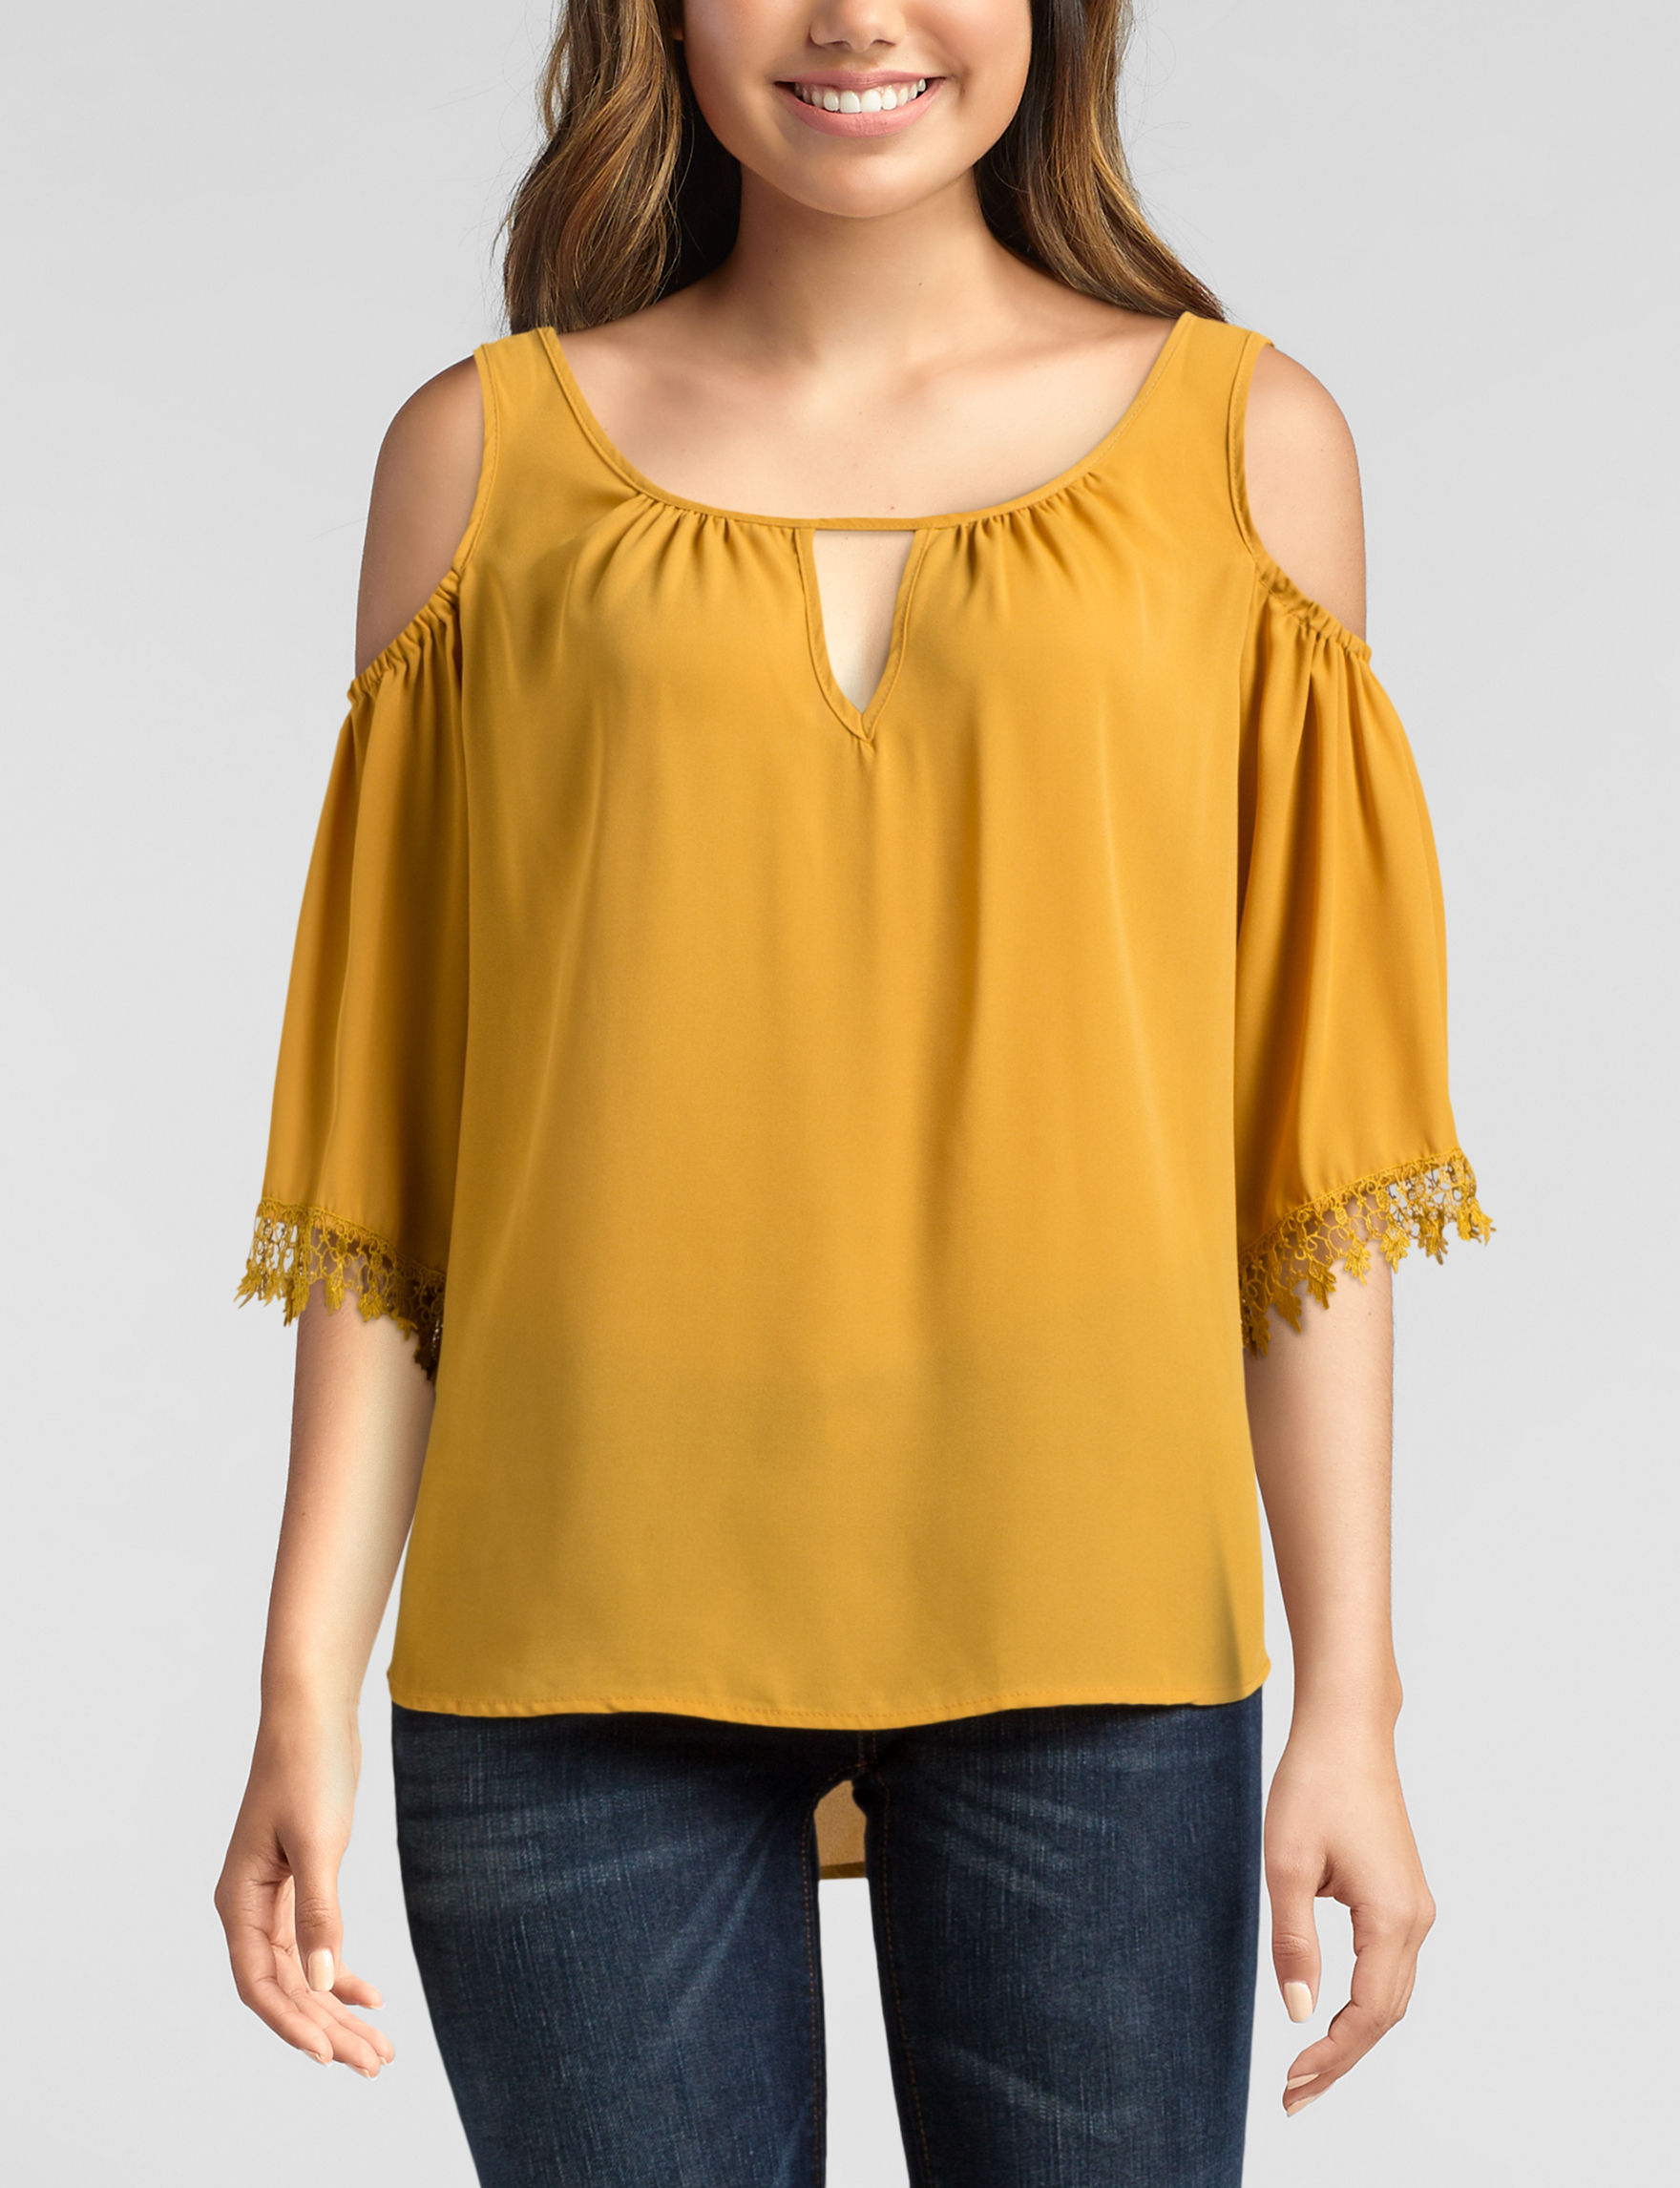 Wishful Park Gold Shirts & Blouses